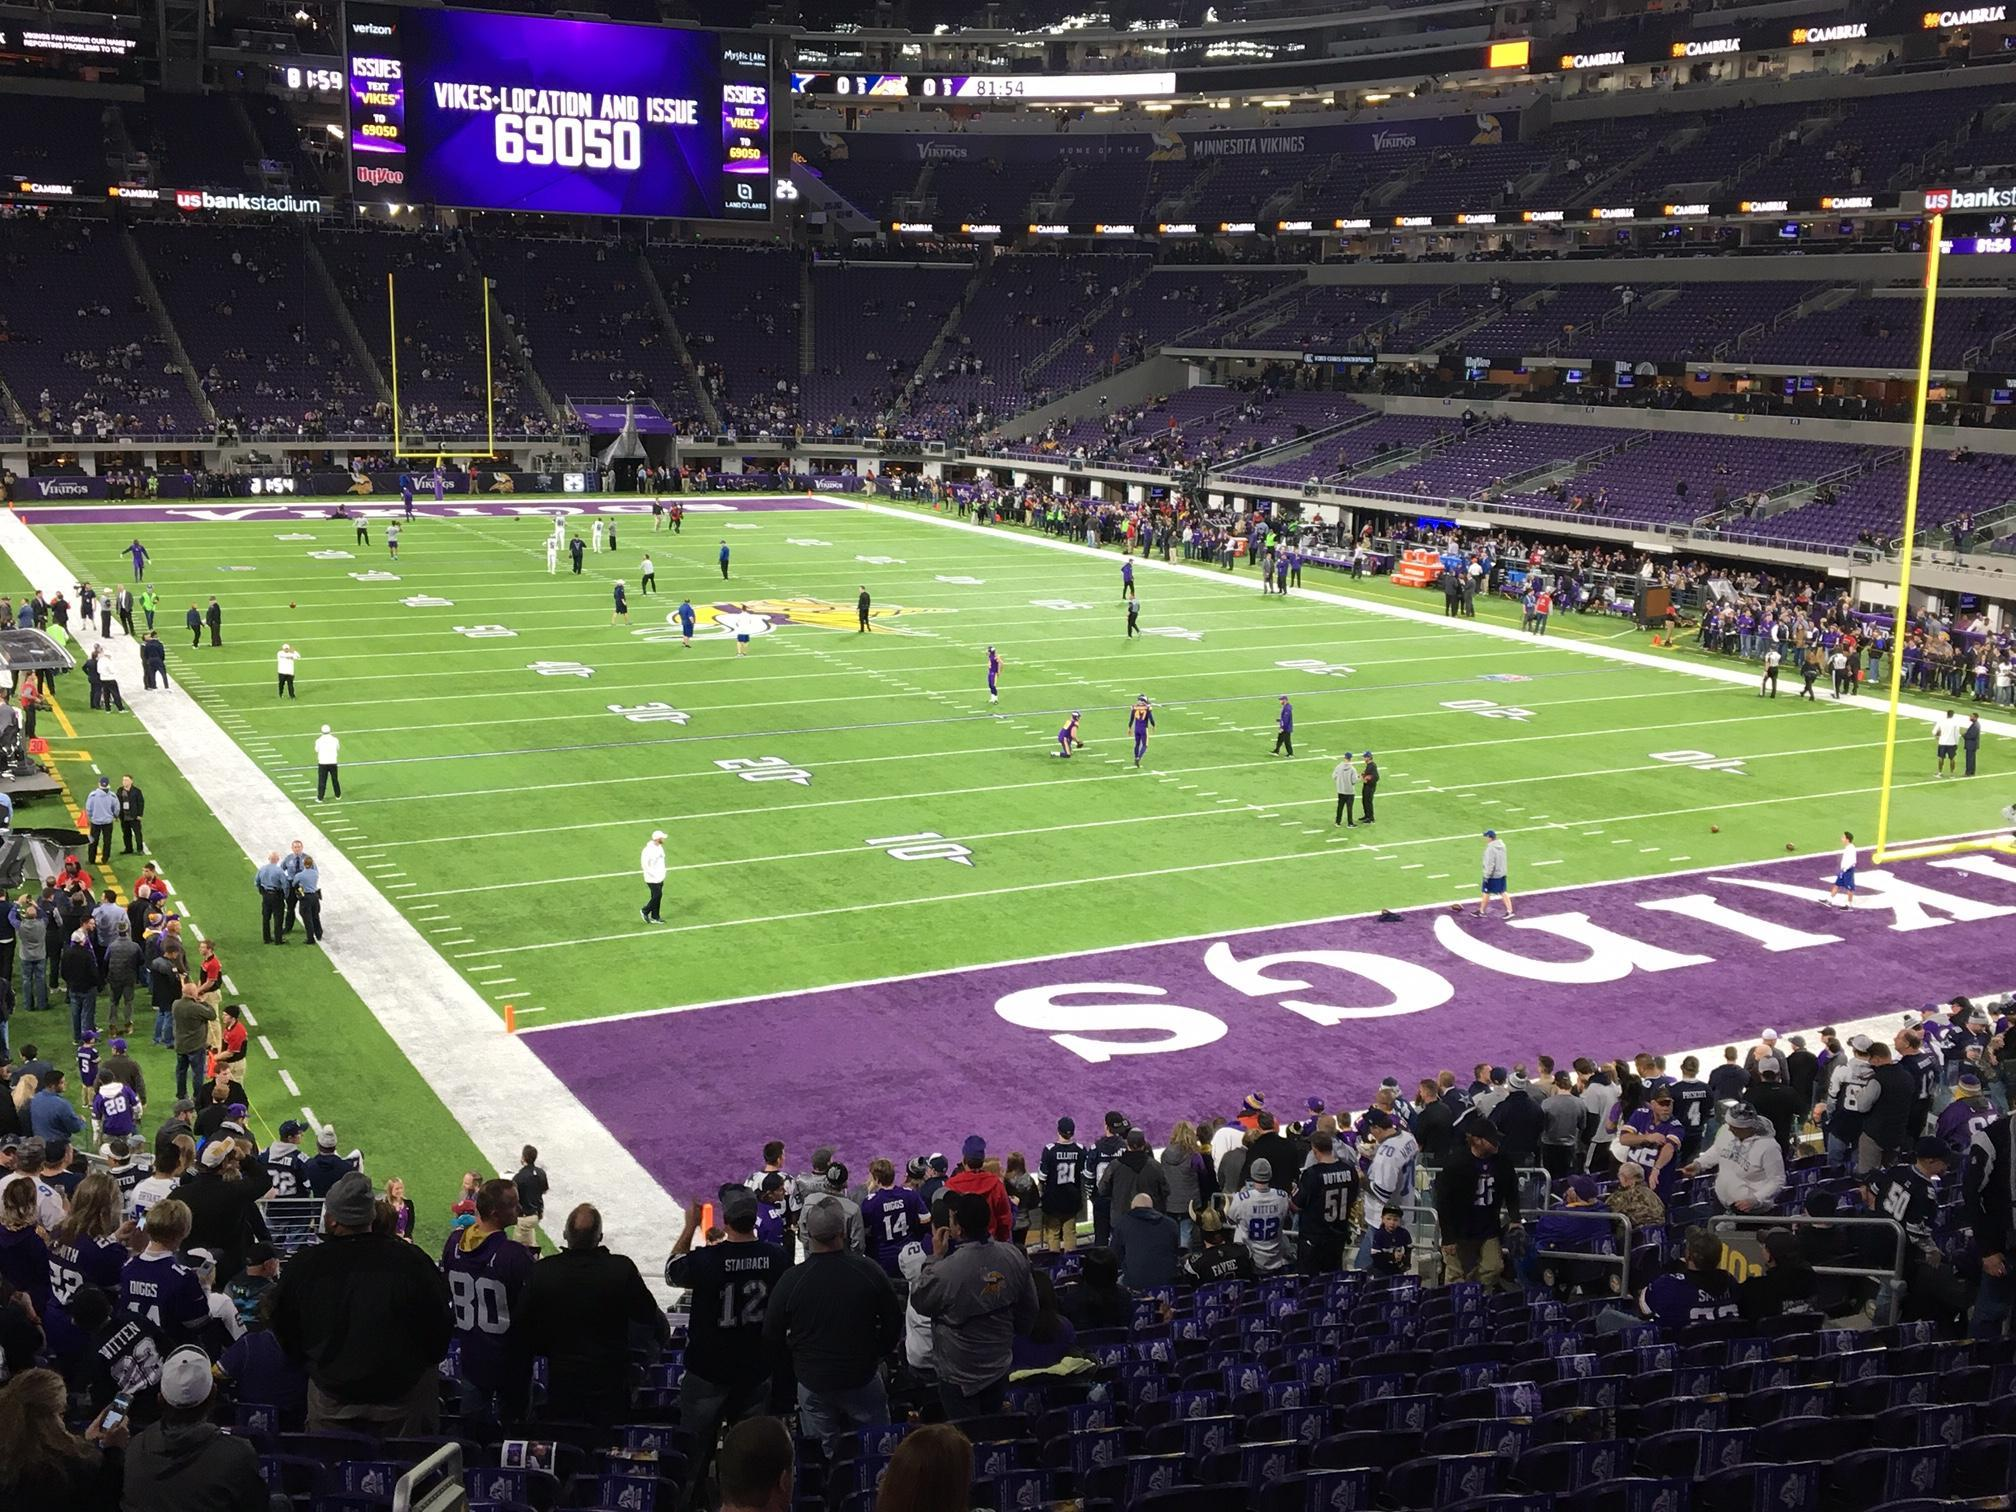 U.S. Bank Stadium Section 101 Row 25 Seat 25